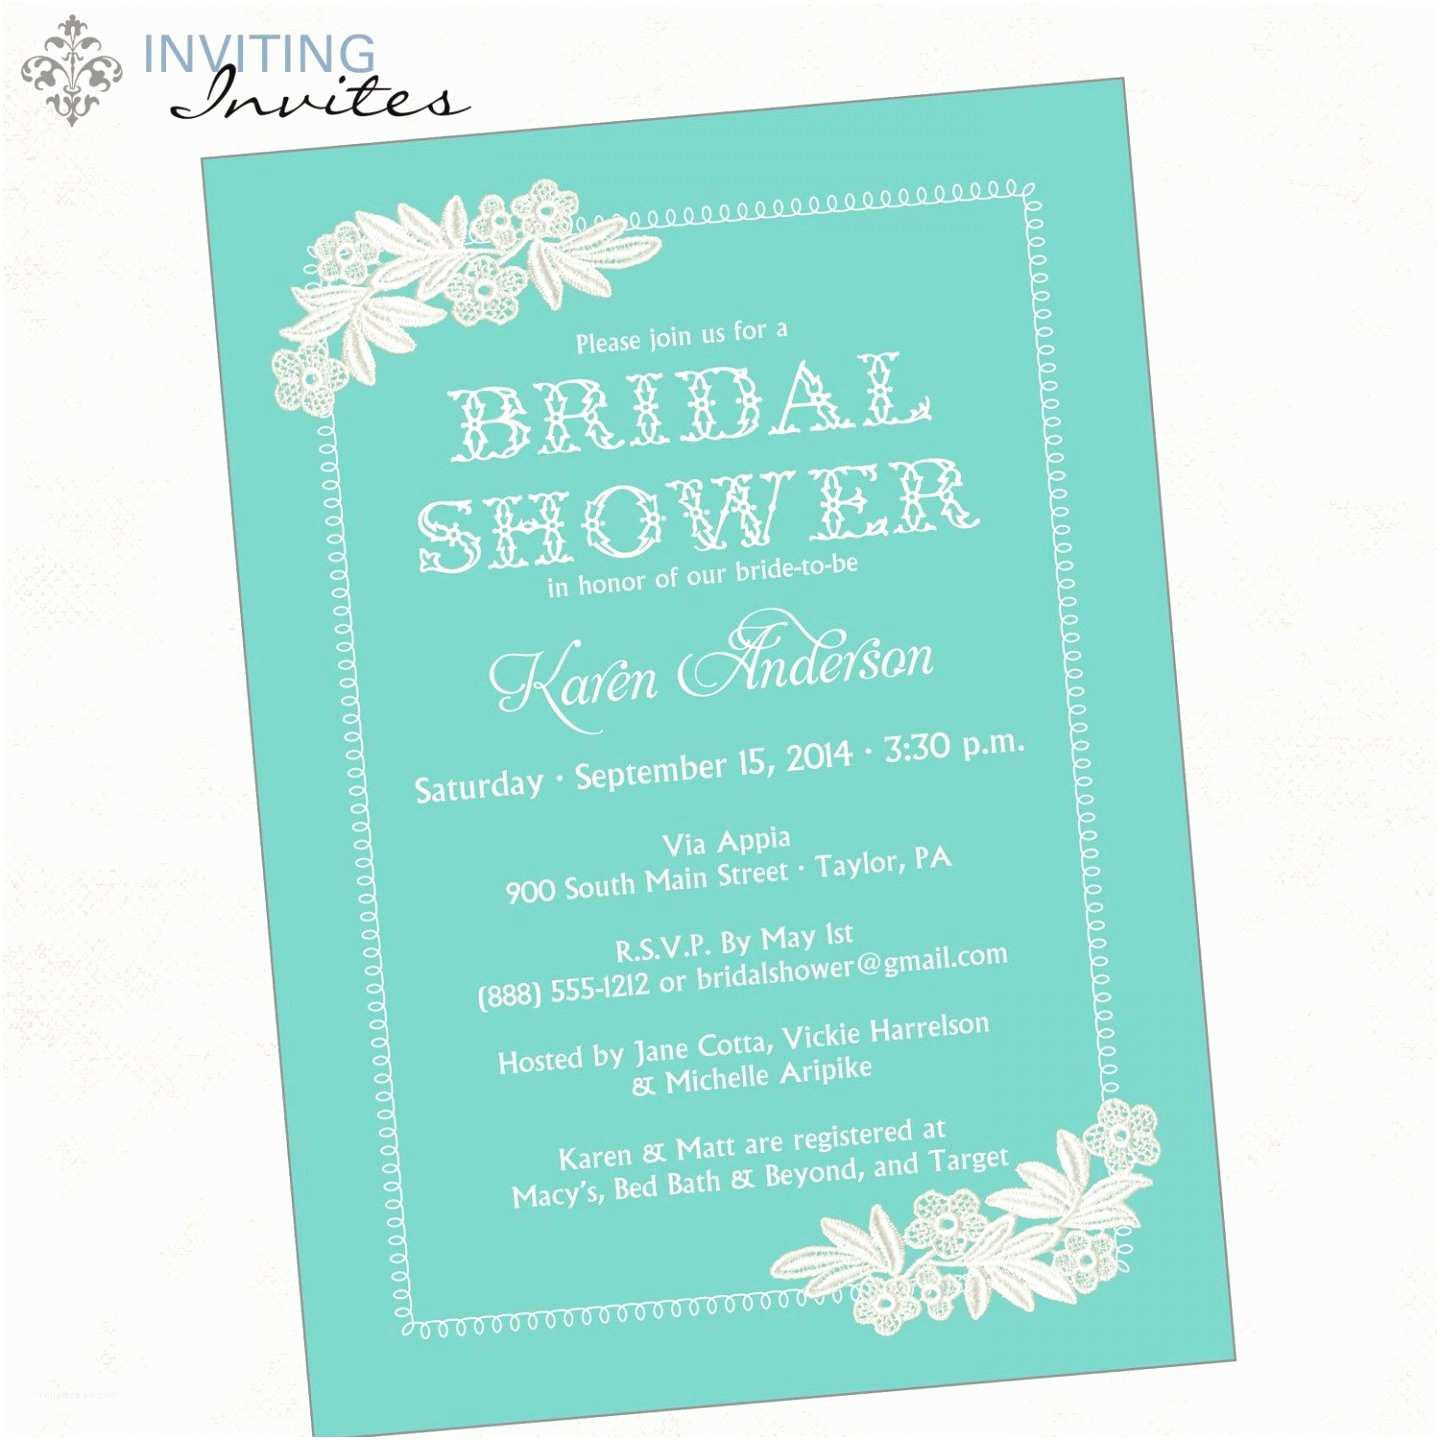 Wedding Shower Invitation Wording Wedding Shower Invitation Sample